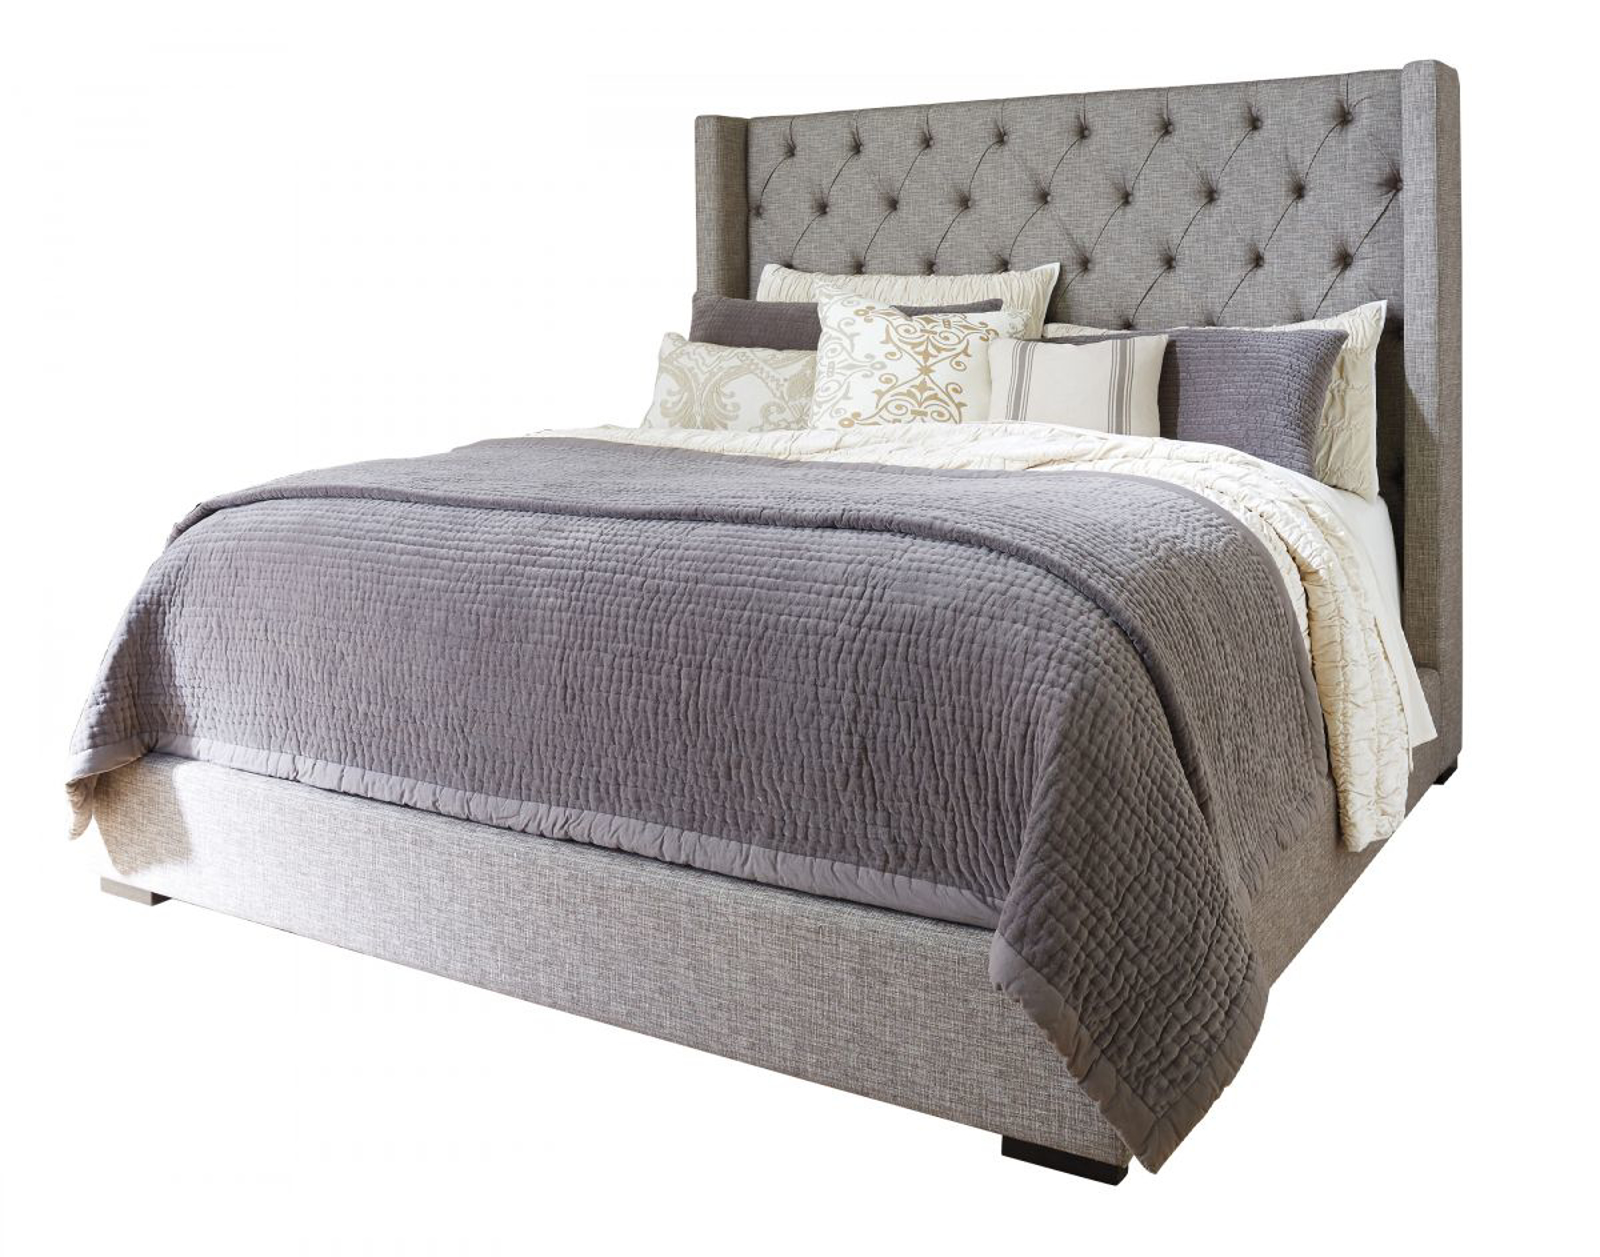 Picture of Sorinella Queen Size Bed